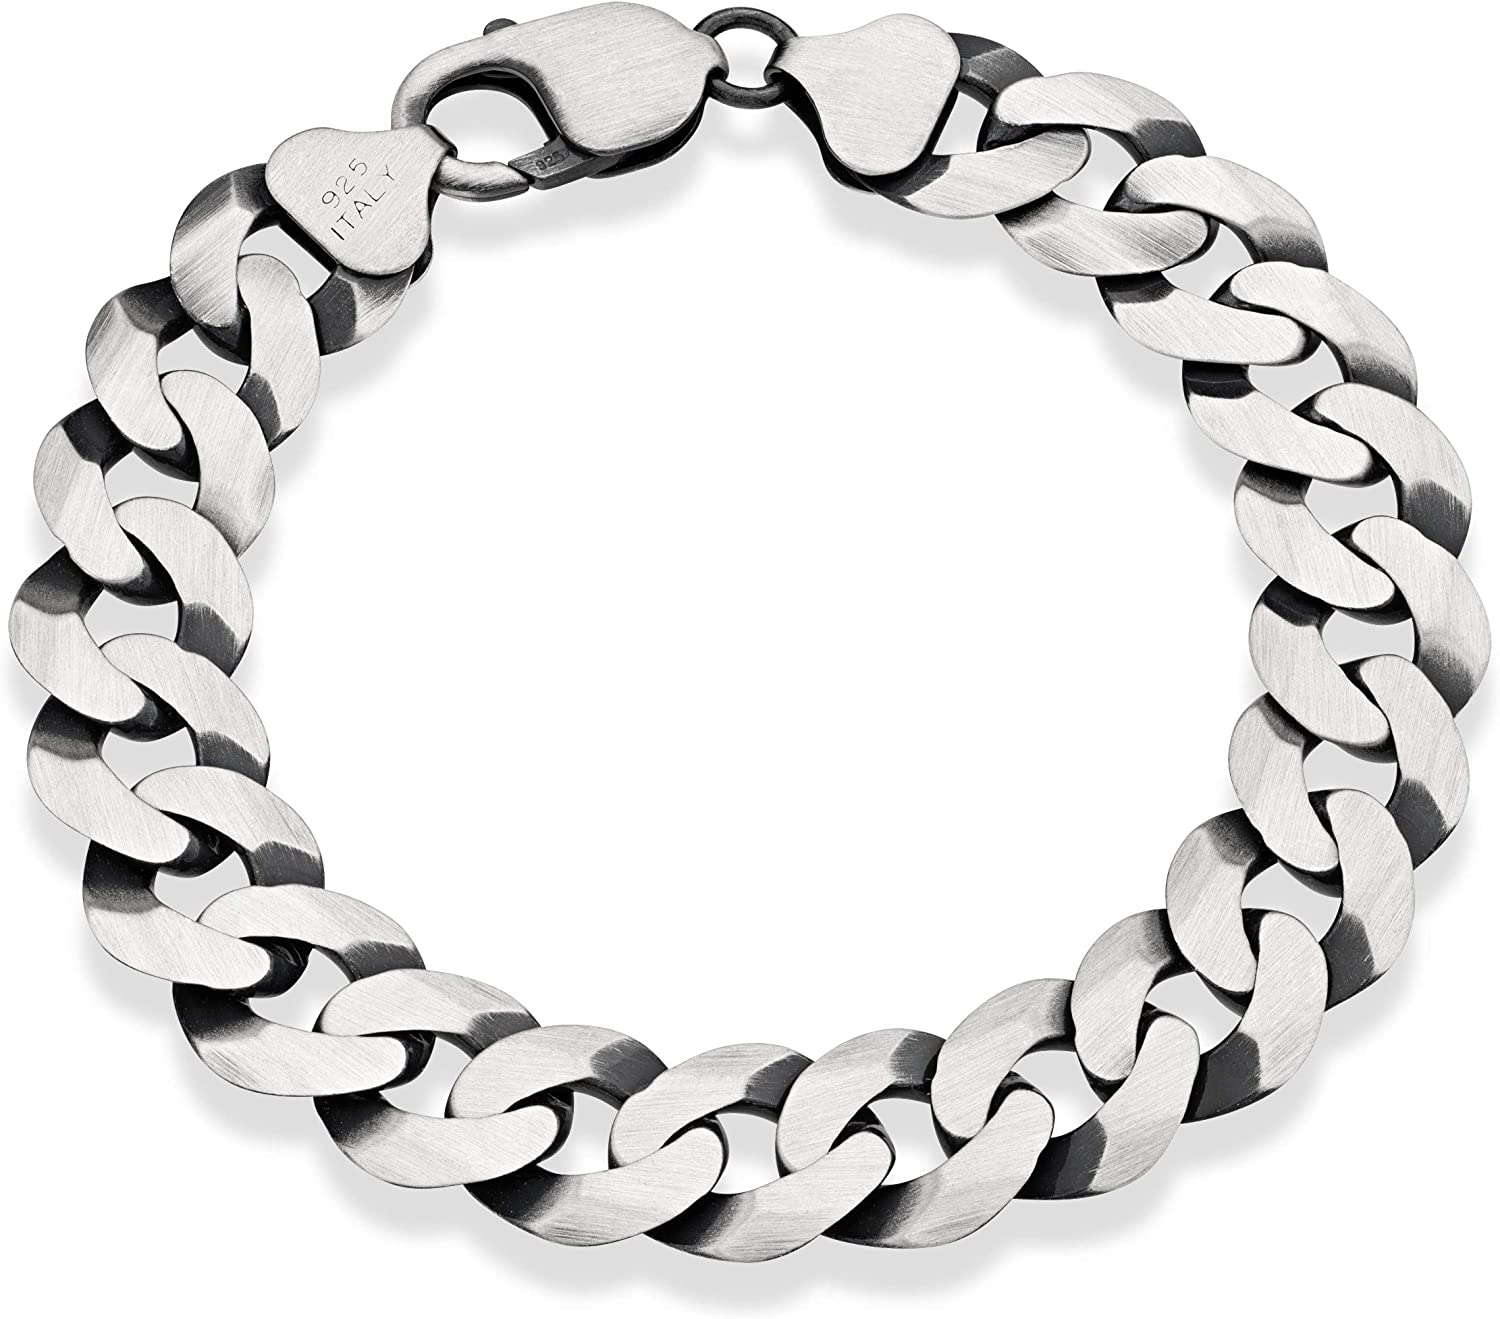 Miabella 925 Sterling Silver Italian 12mm Solid Diamond-Cut Cuban Link Curb Chain Bracelet 8.5 7.5 8 9 Inch Jewelry for Men Made in Italy